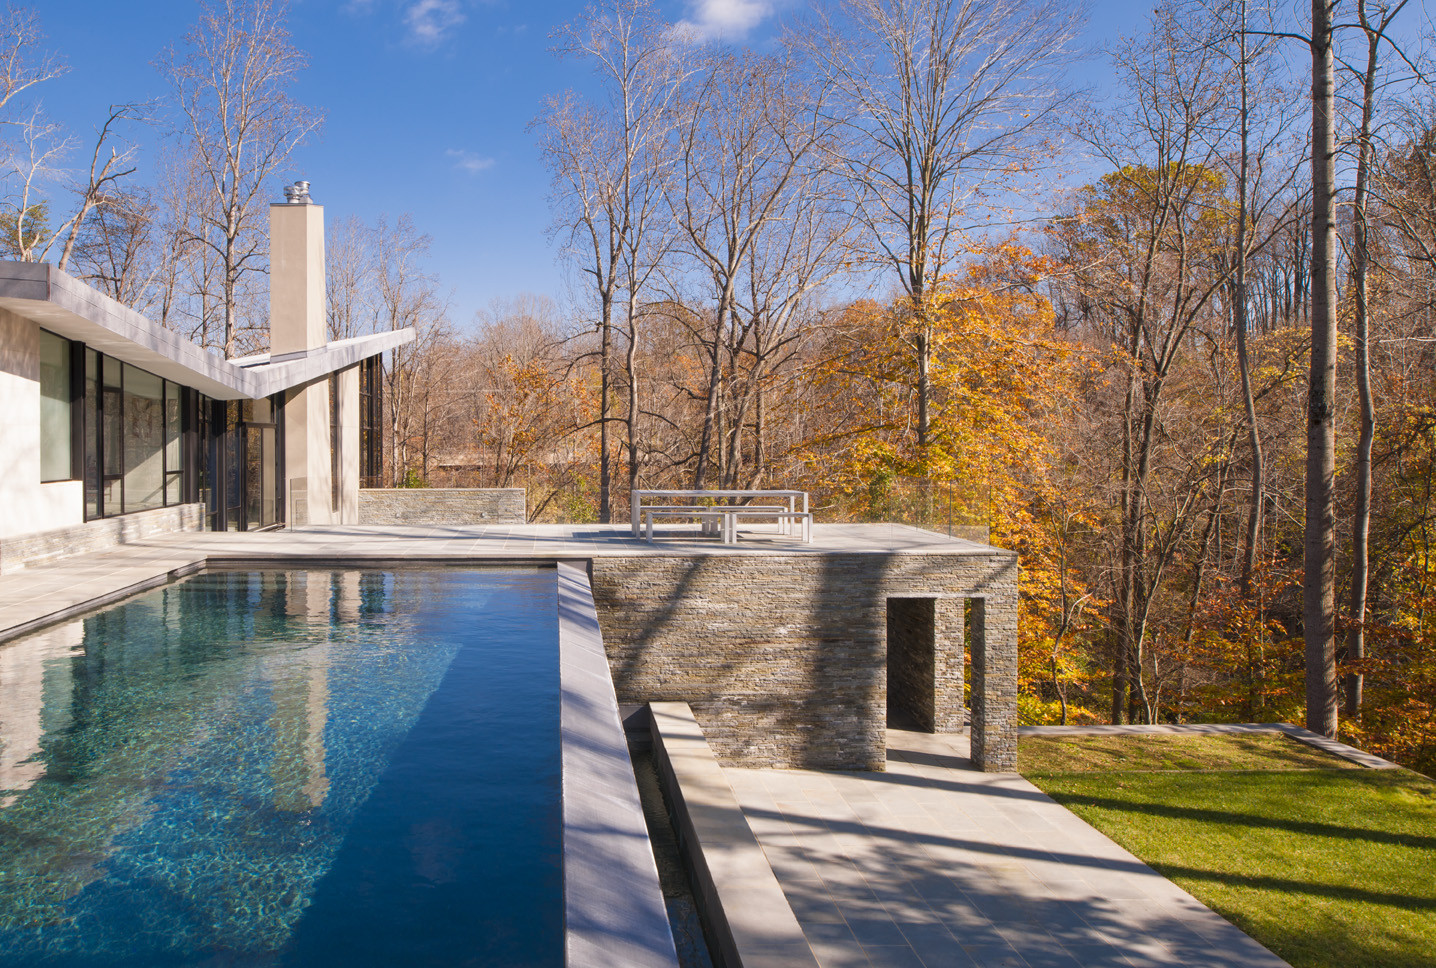 Residencia Difficult Run / Robert M. Gurney Architect, © Maxwell MacKenzie Architectural Photographer